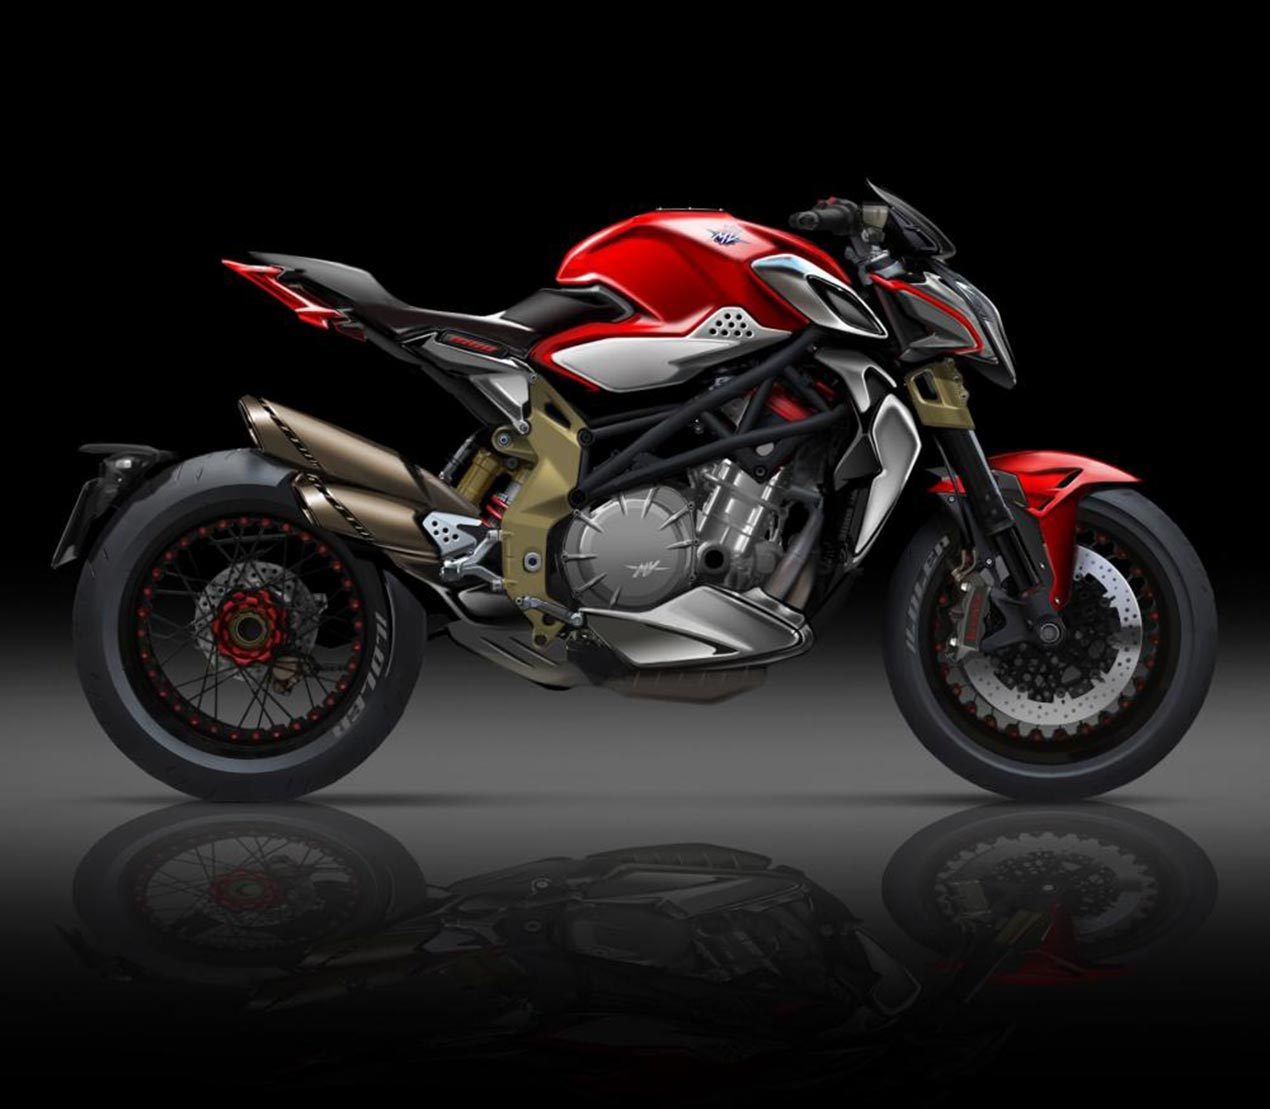 2017 mv agusta brutale archives asphalt rubber. Black Bedroom Furniture Sets. Home Design Ideas